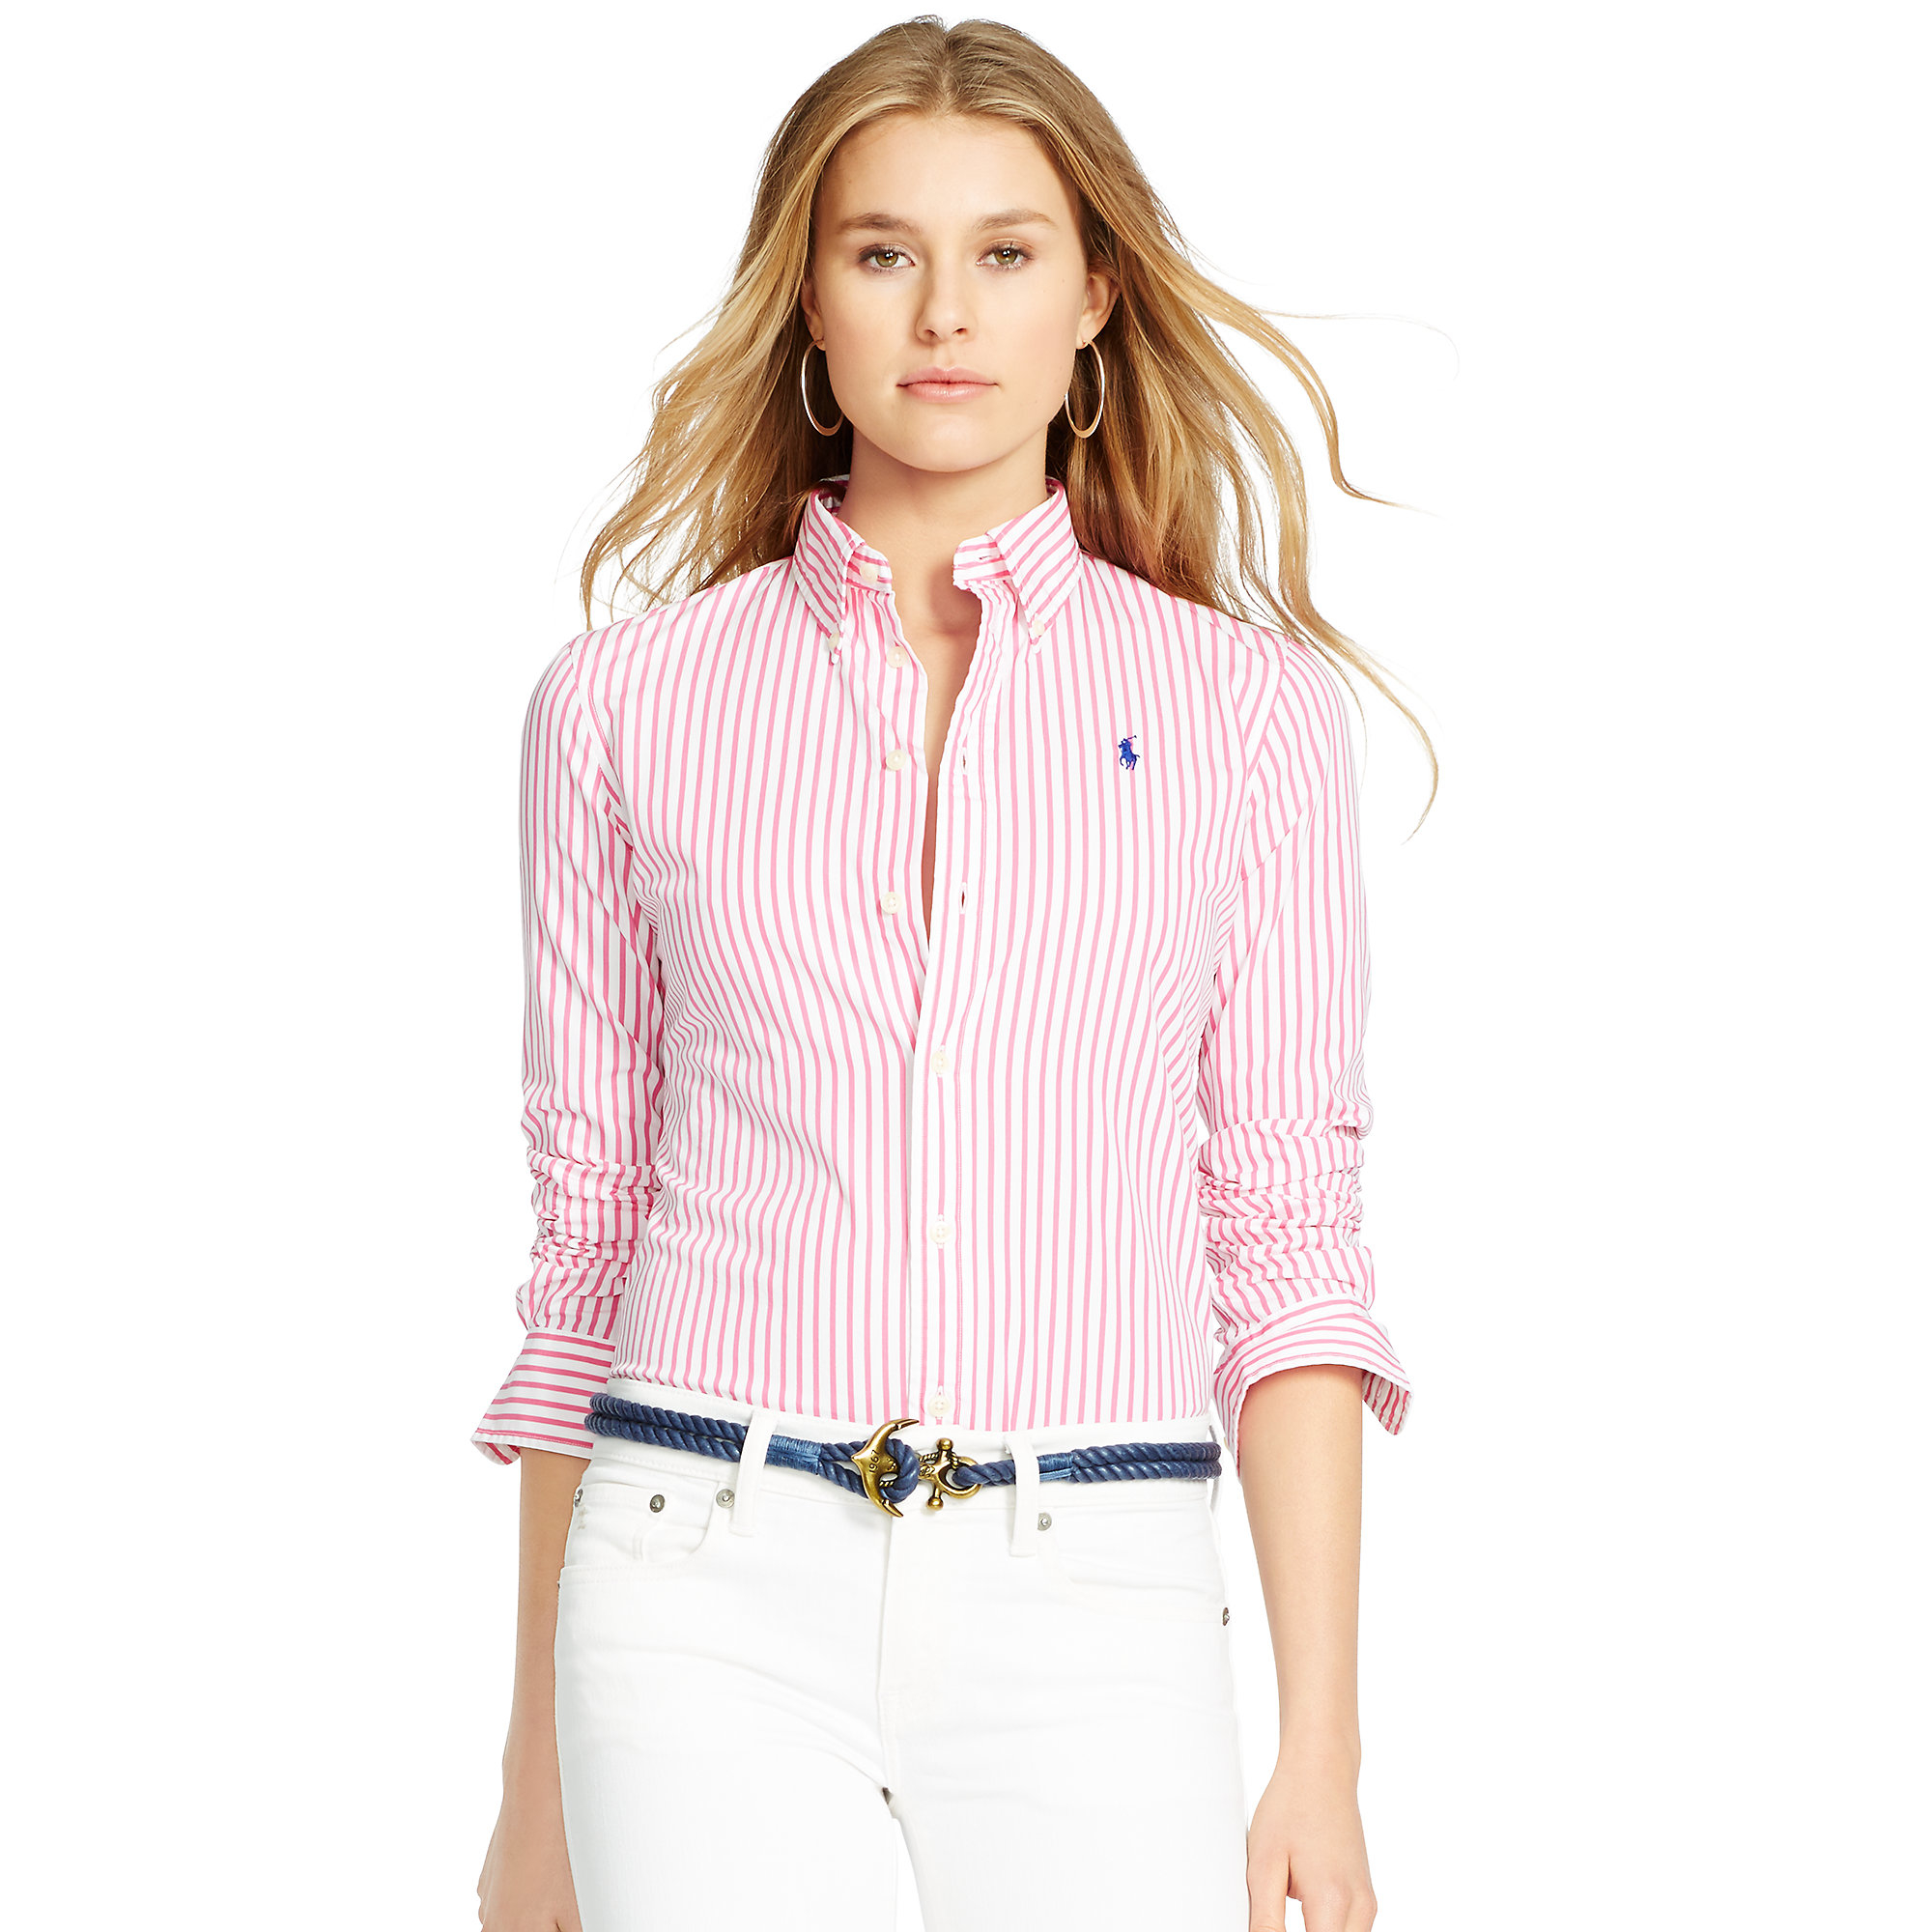 Polo ralph lauren custom fit striped shirt in pink lyst for Pink and white ralph lauren shirt